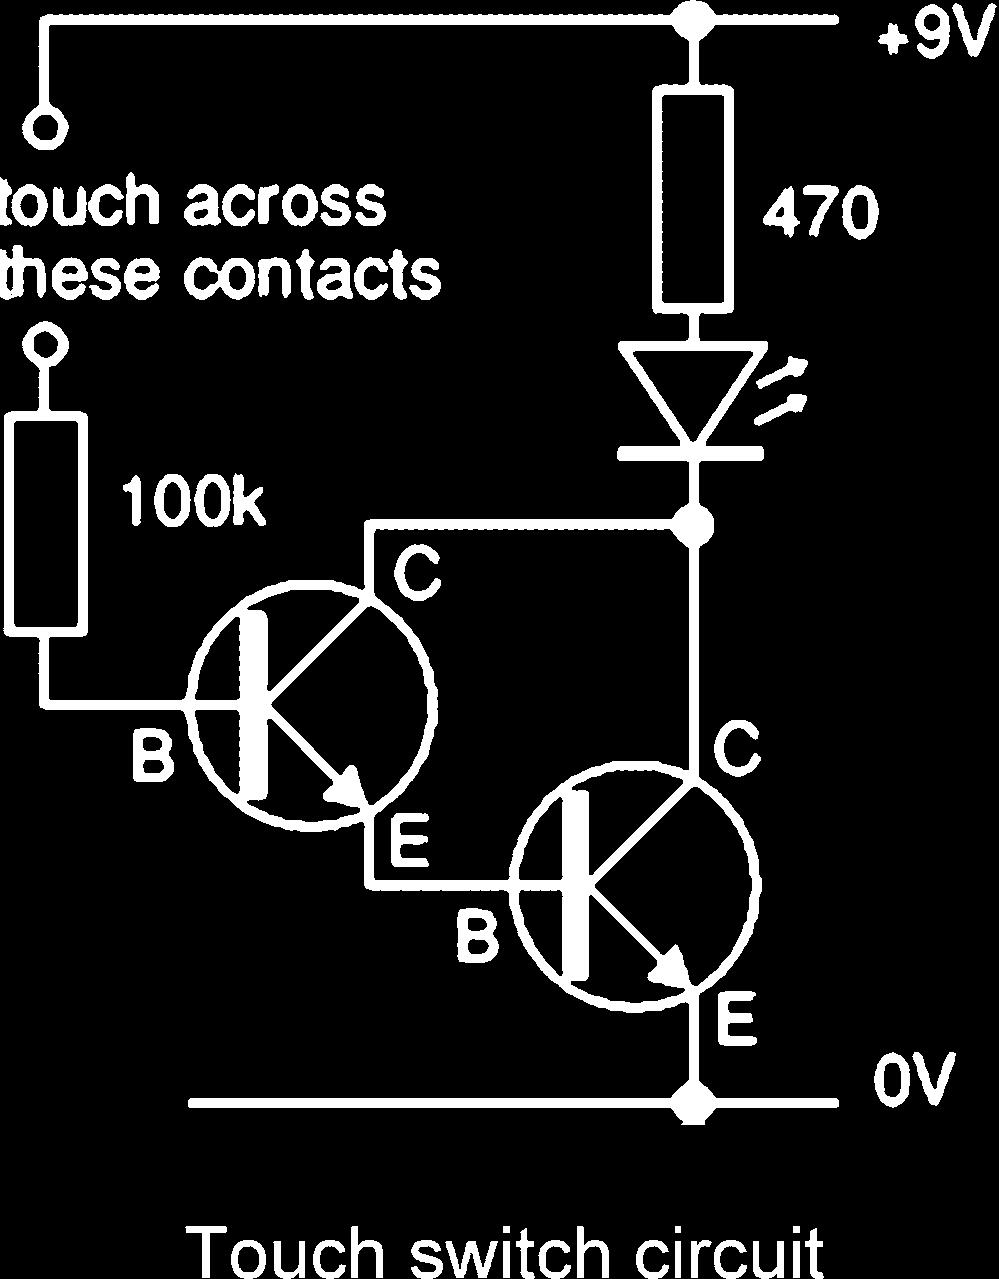 Edward K Blum L Editors Alfred V Aho Computer Science The Simple Singletransistor Circuit Provides Extremely Stable Beat Pair Behaves Like A Single Transistor With Very High Current Gain